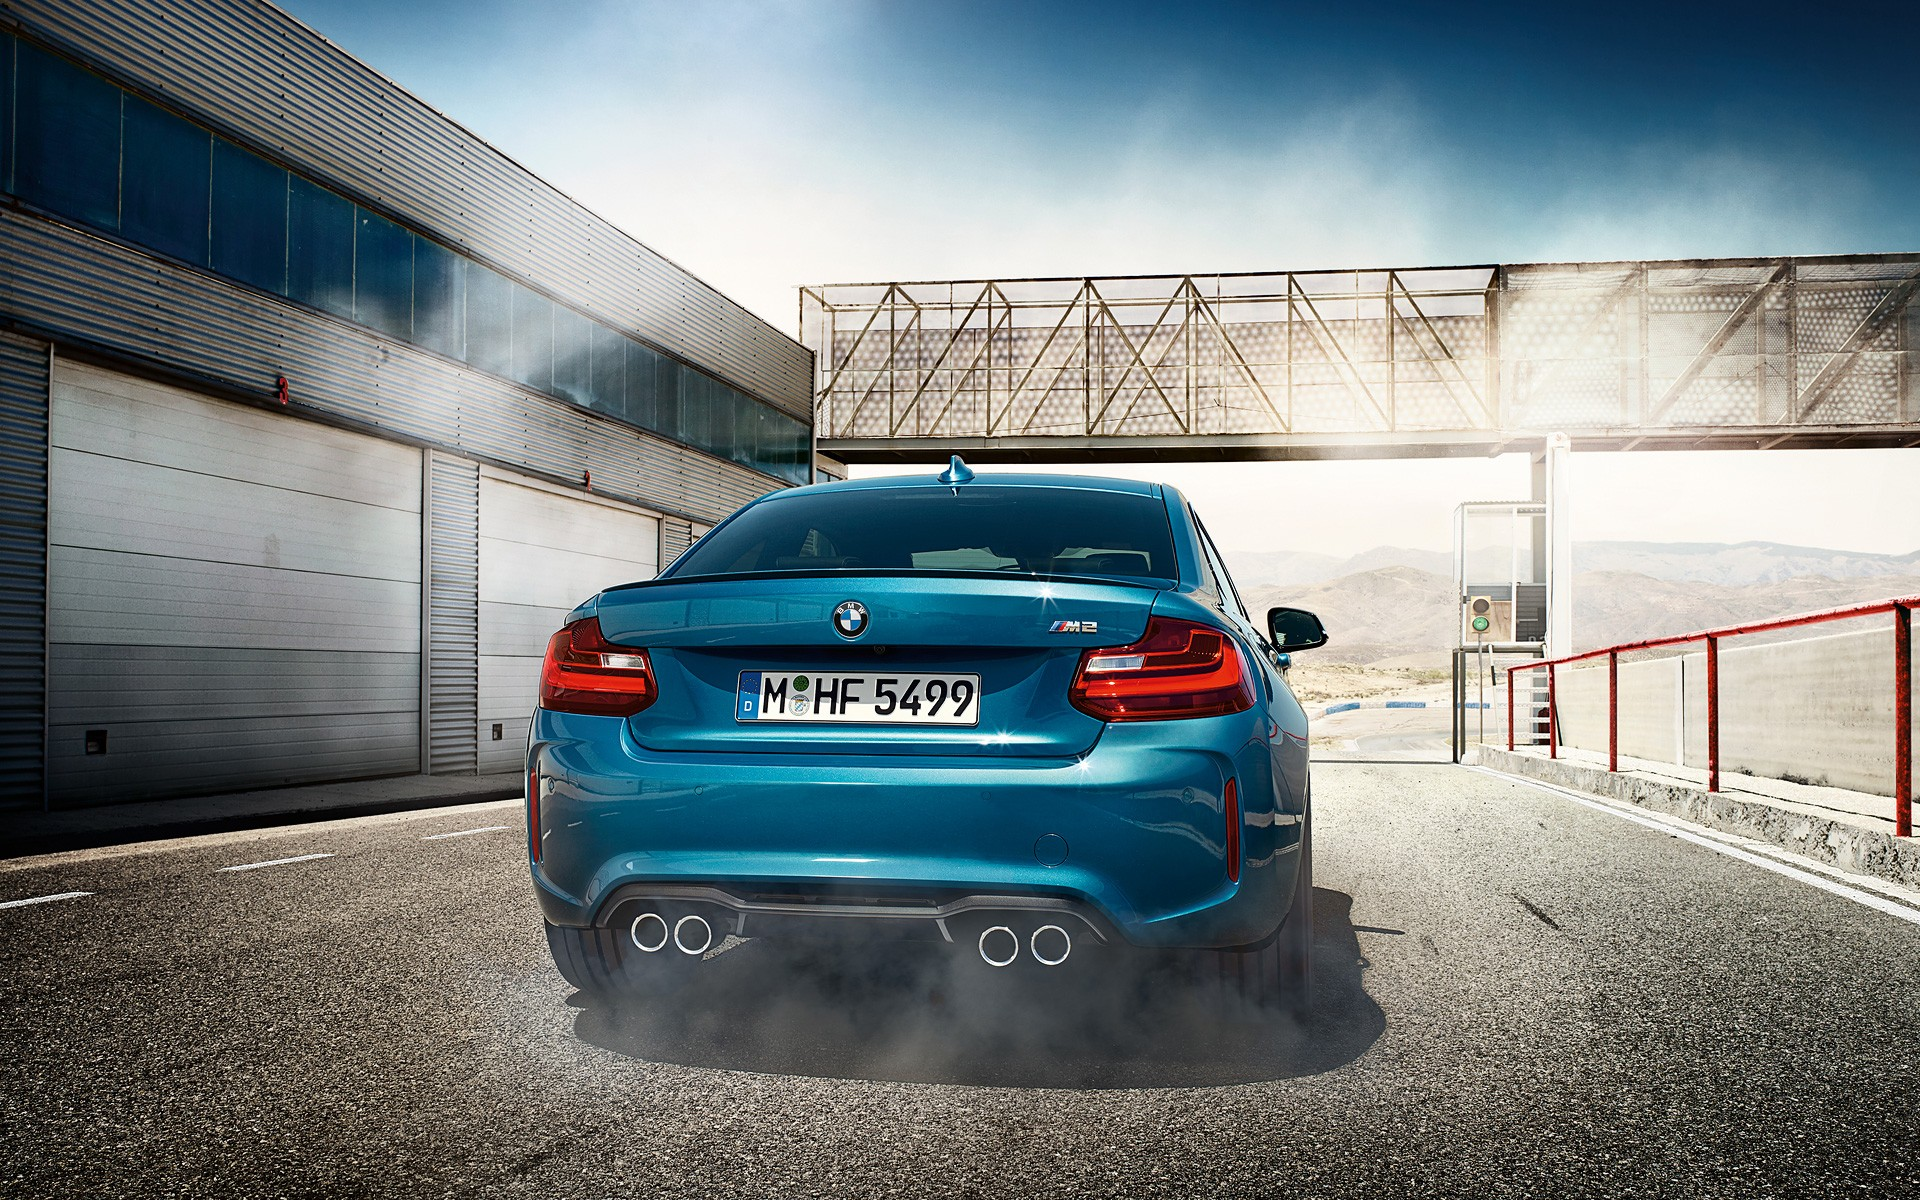 Best Car Battery >> Get Your BMW M2 Wallpapers Fresh Out the Oven - autoevolution